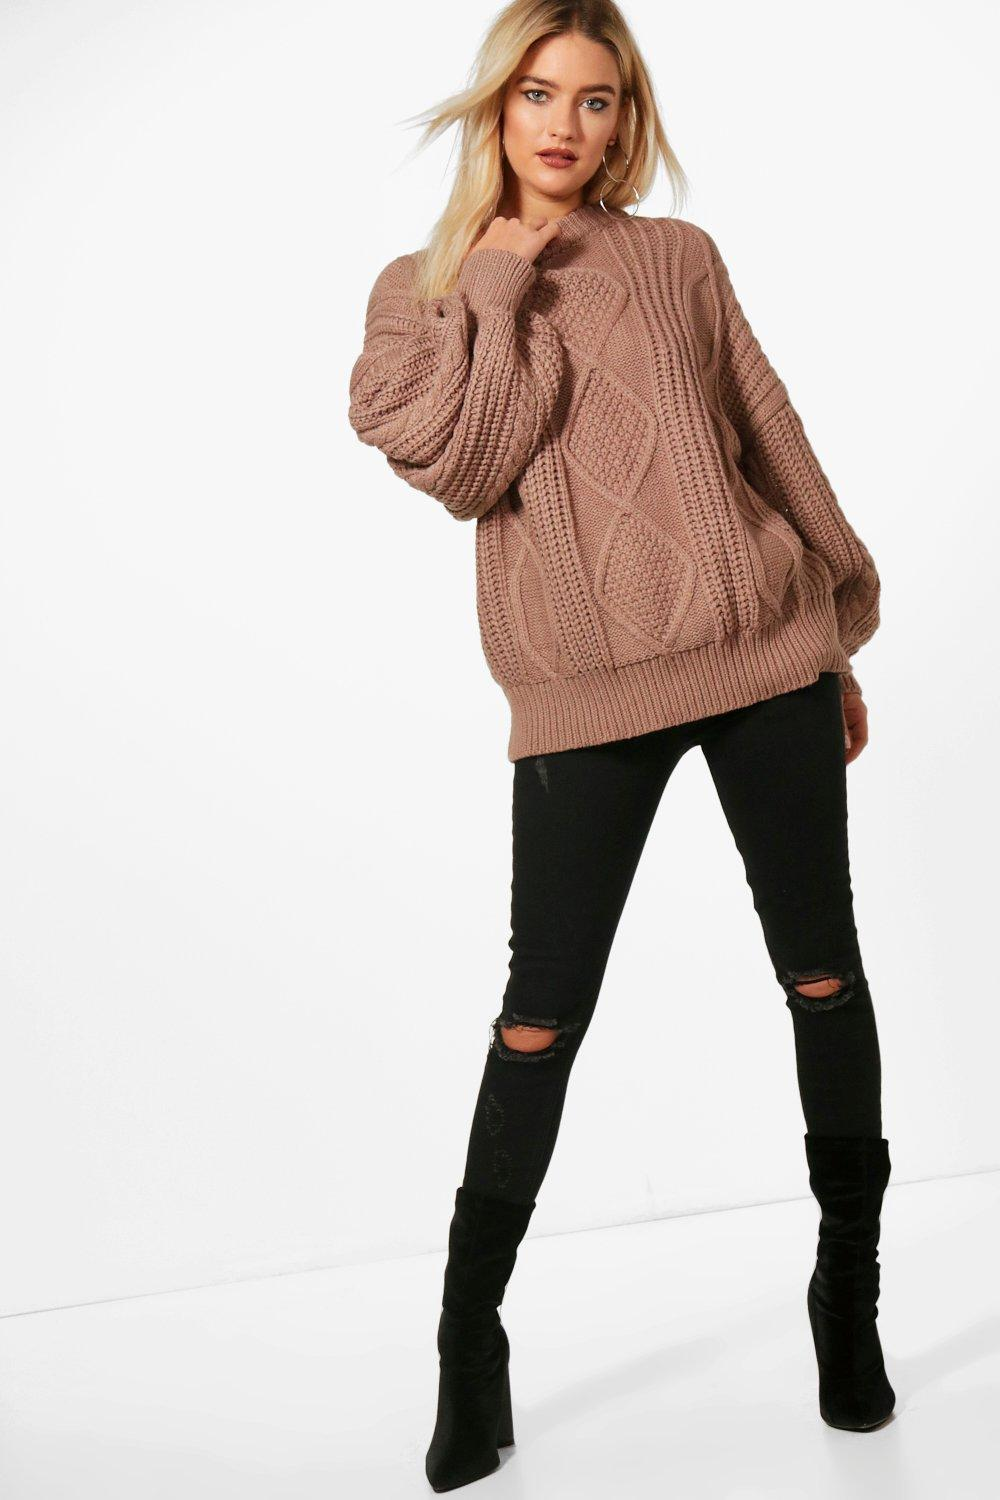 Jumper mocha Oversized Oversized Cable Cable Jumper Jumper Oversized Cable mocha wqYXAxEzxt